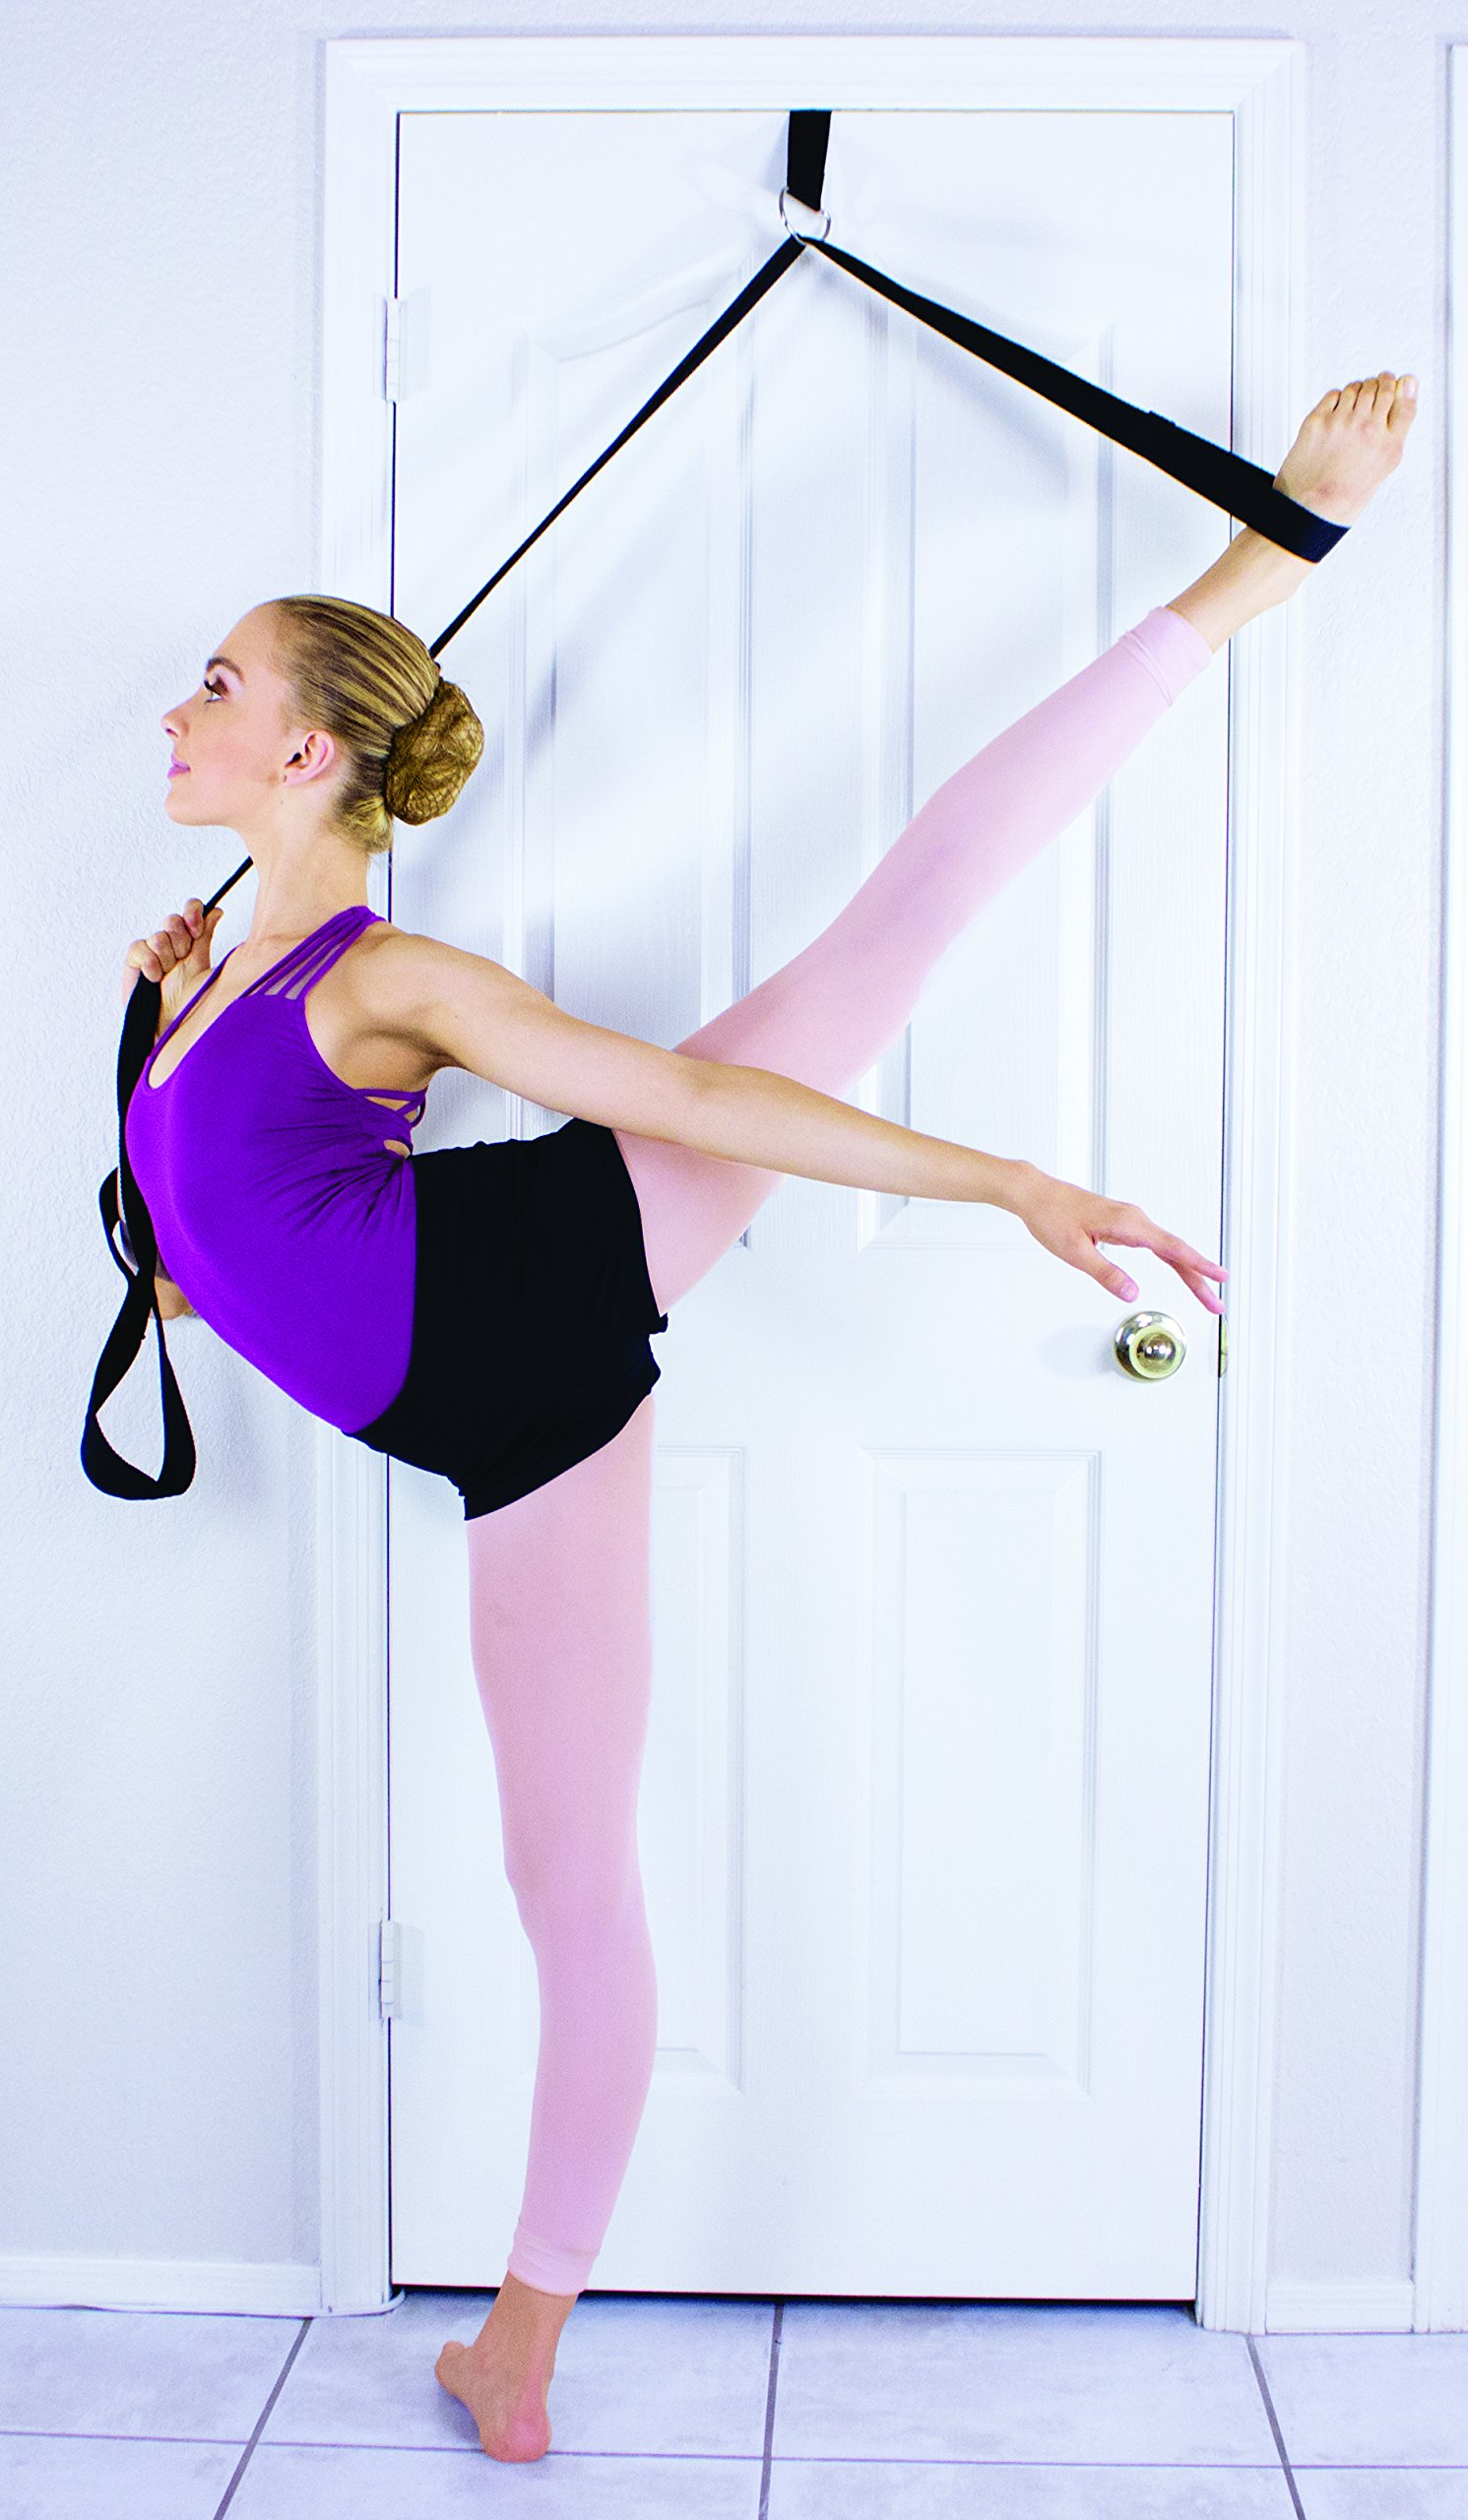 STRETCHMAX - Leg Stretching for Ballet, Dance & Gymnastics Training by SuperiorStretch